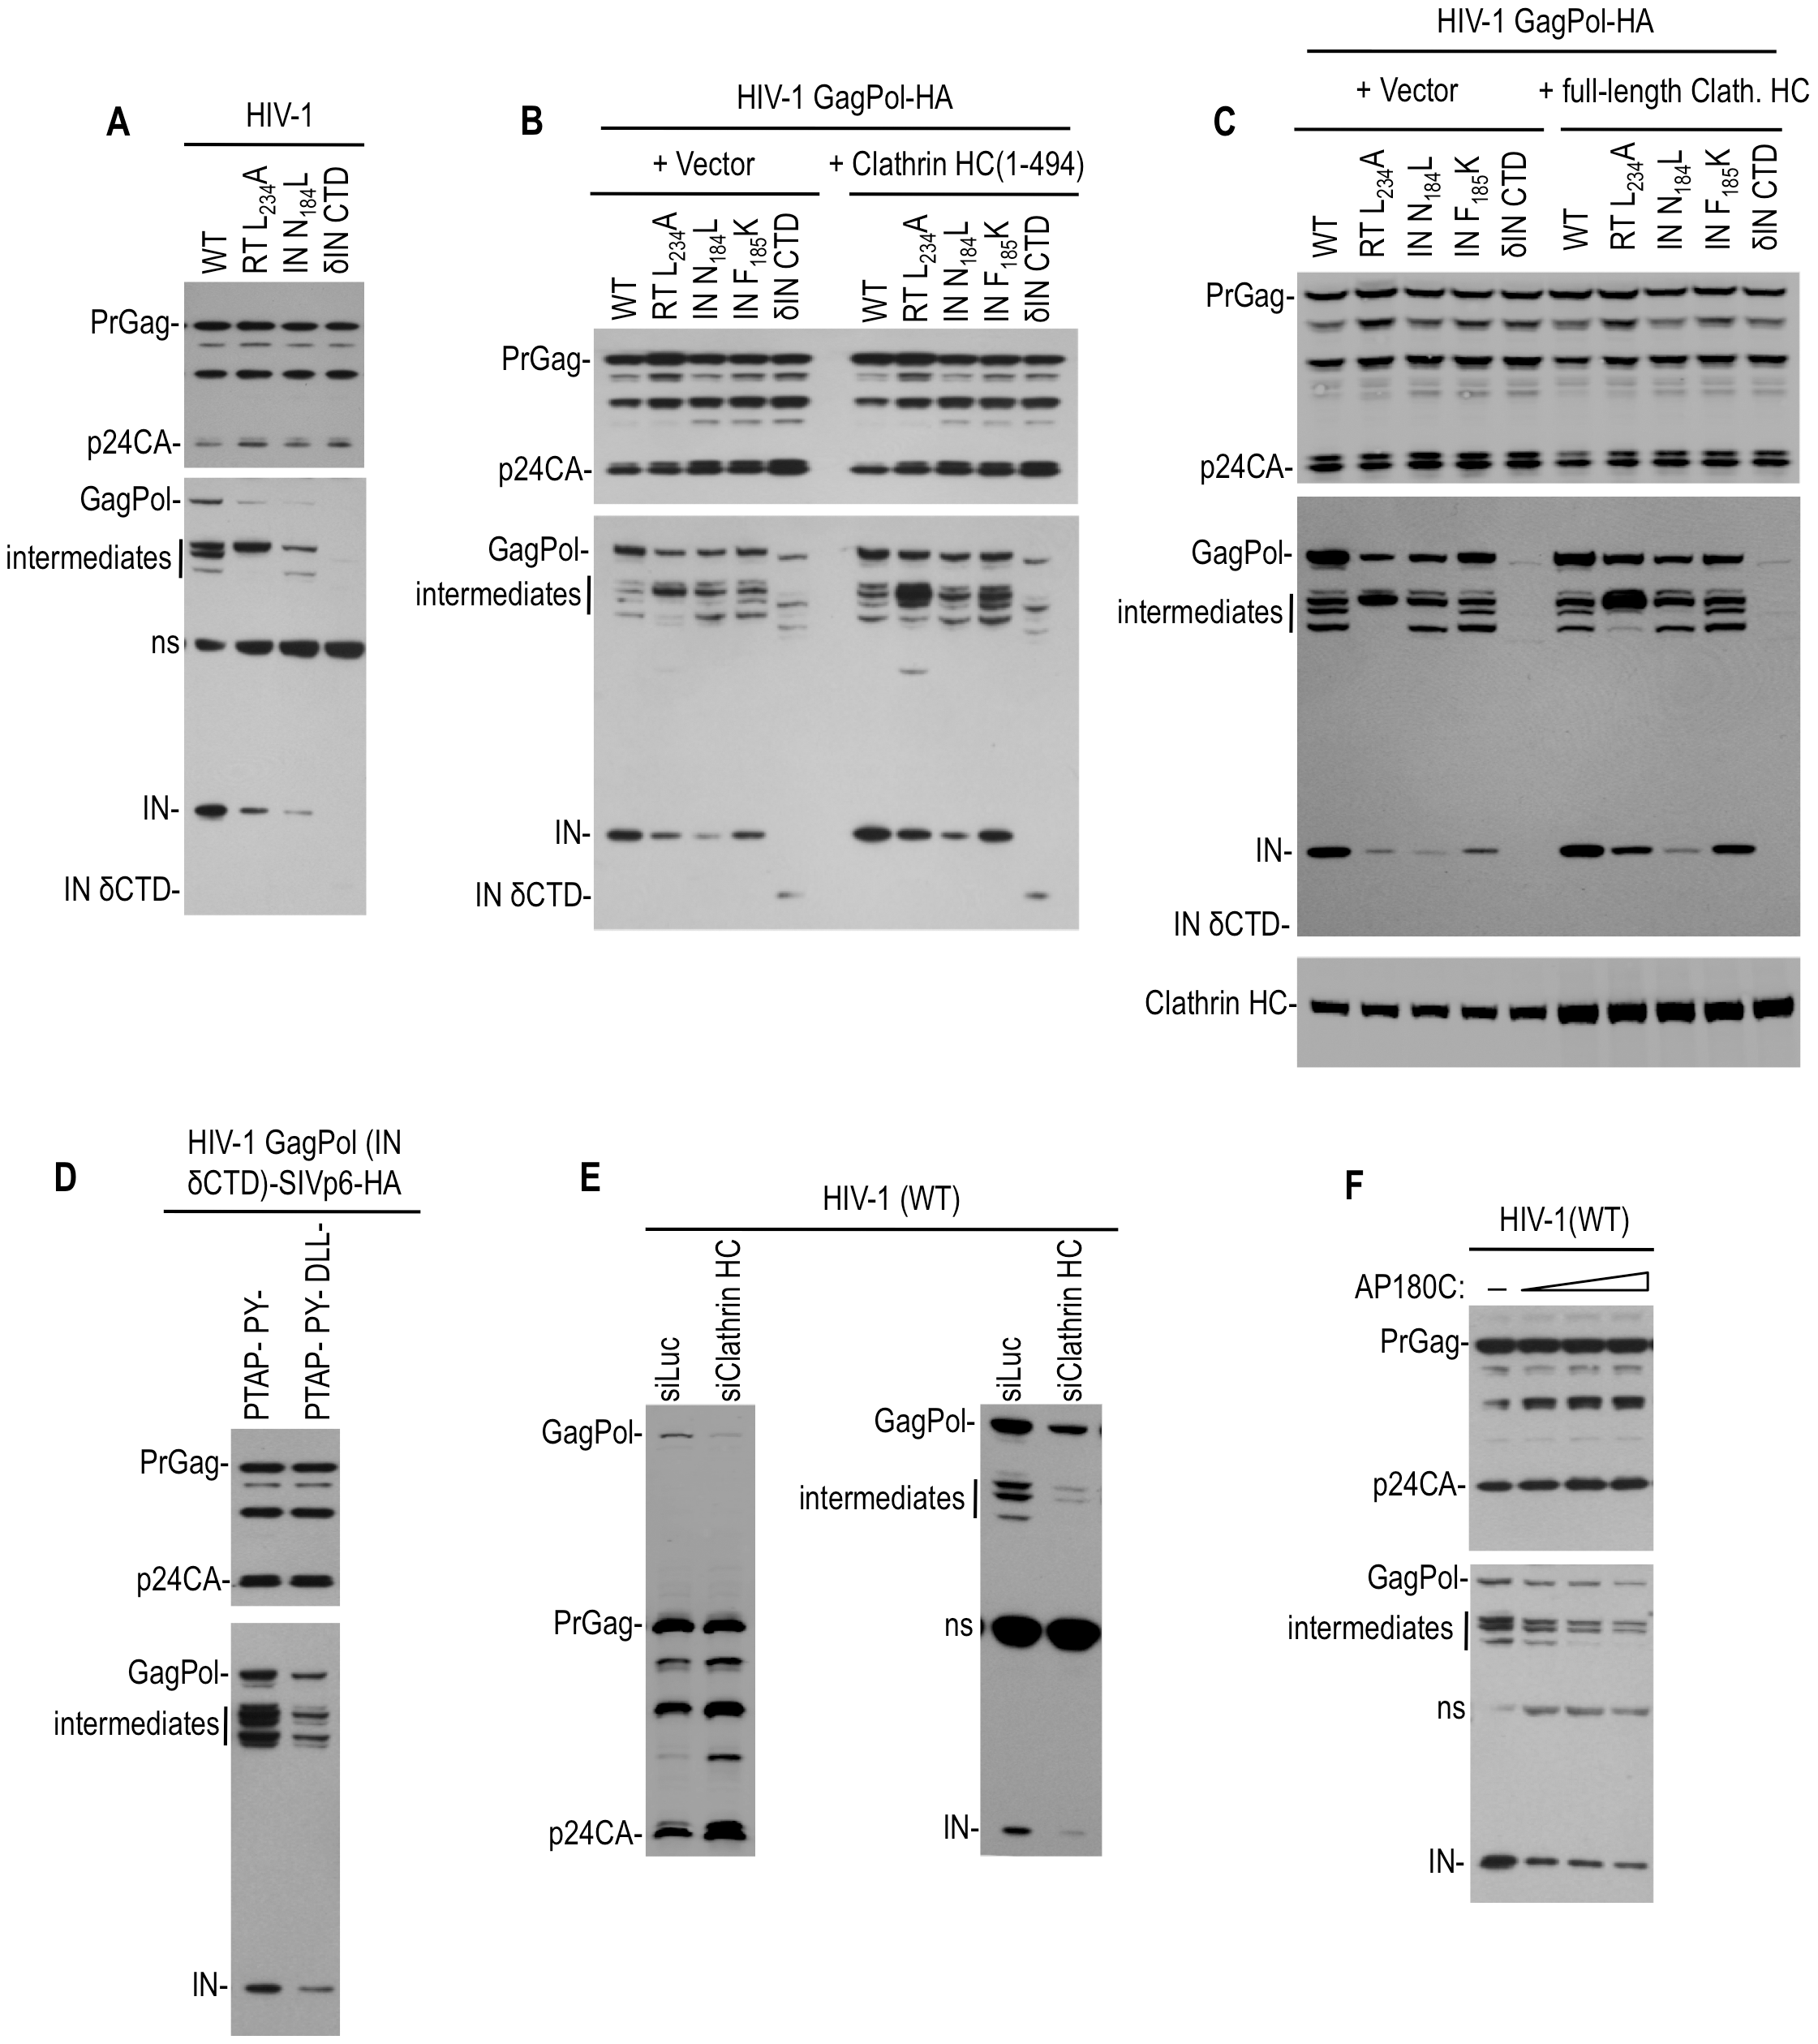 Effect of Pol mutations and clathrin on HIV-1 Pol expression.